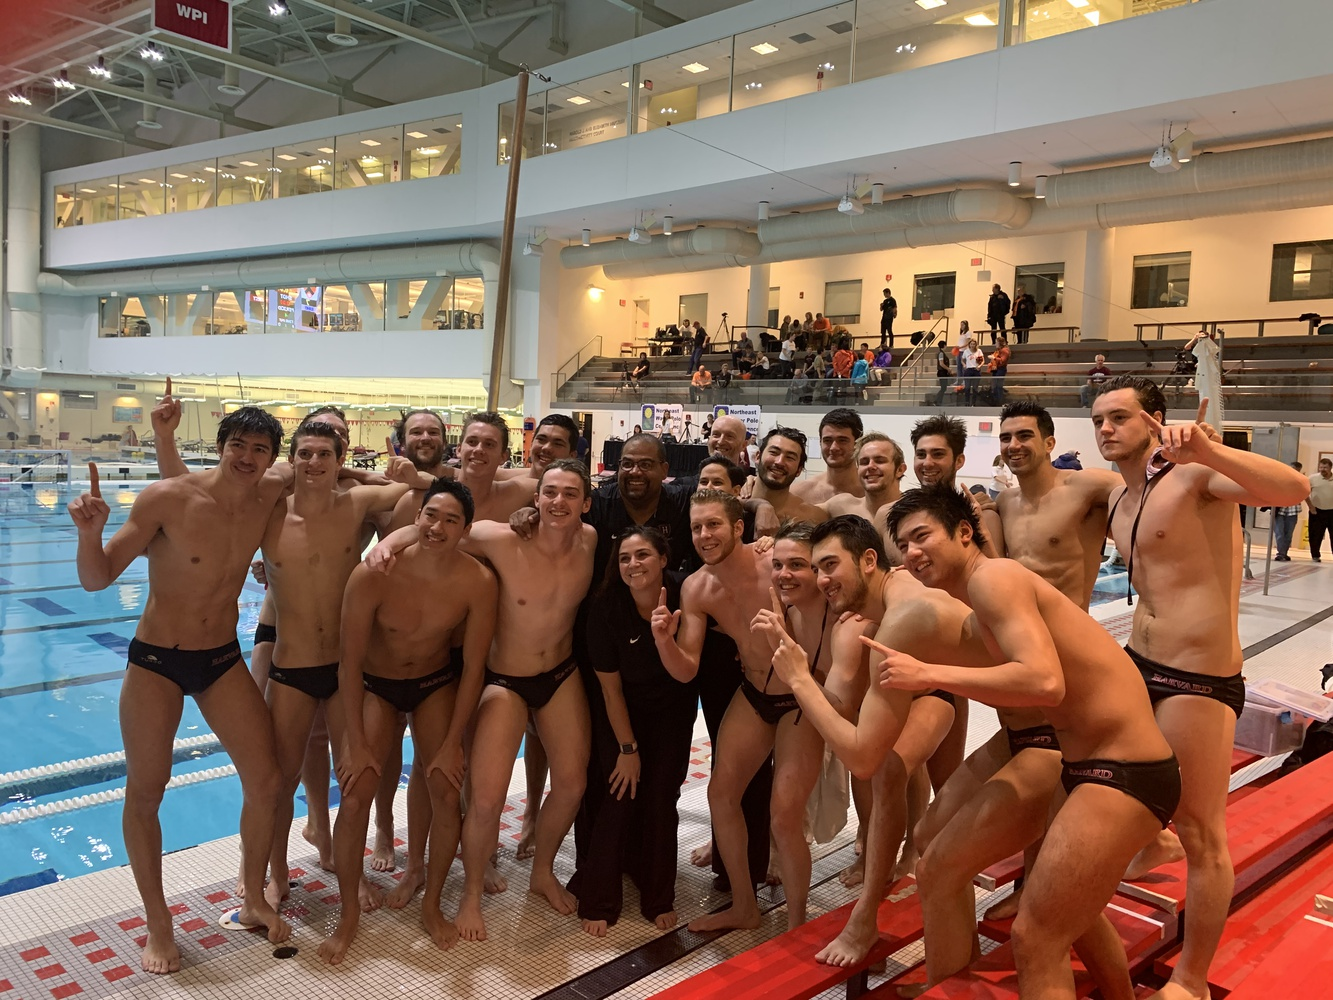 Harvard managed to hold on to its one-goal lead over Princeton in the closing stages of the NWPC Championship. With the 8-7 victory, the team earned the chance for a photo op and an NCAA Tournament berth.